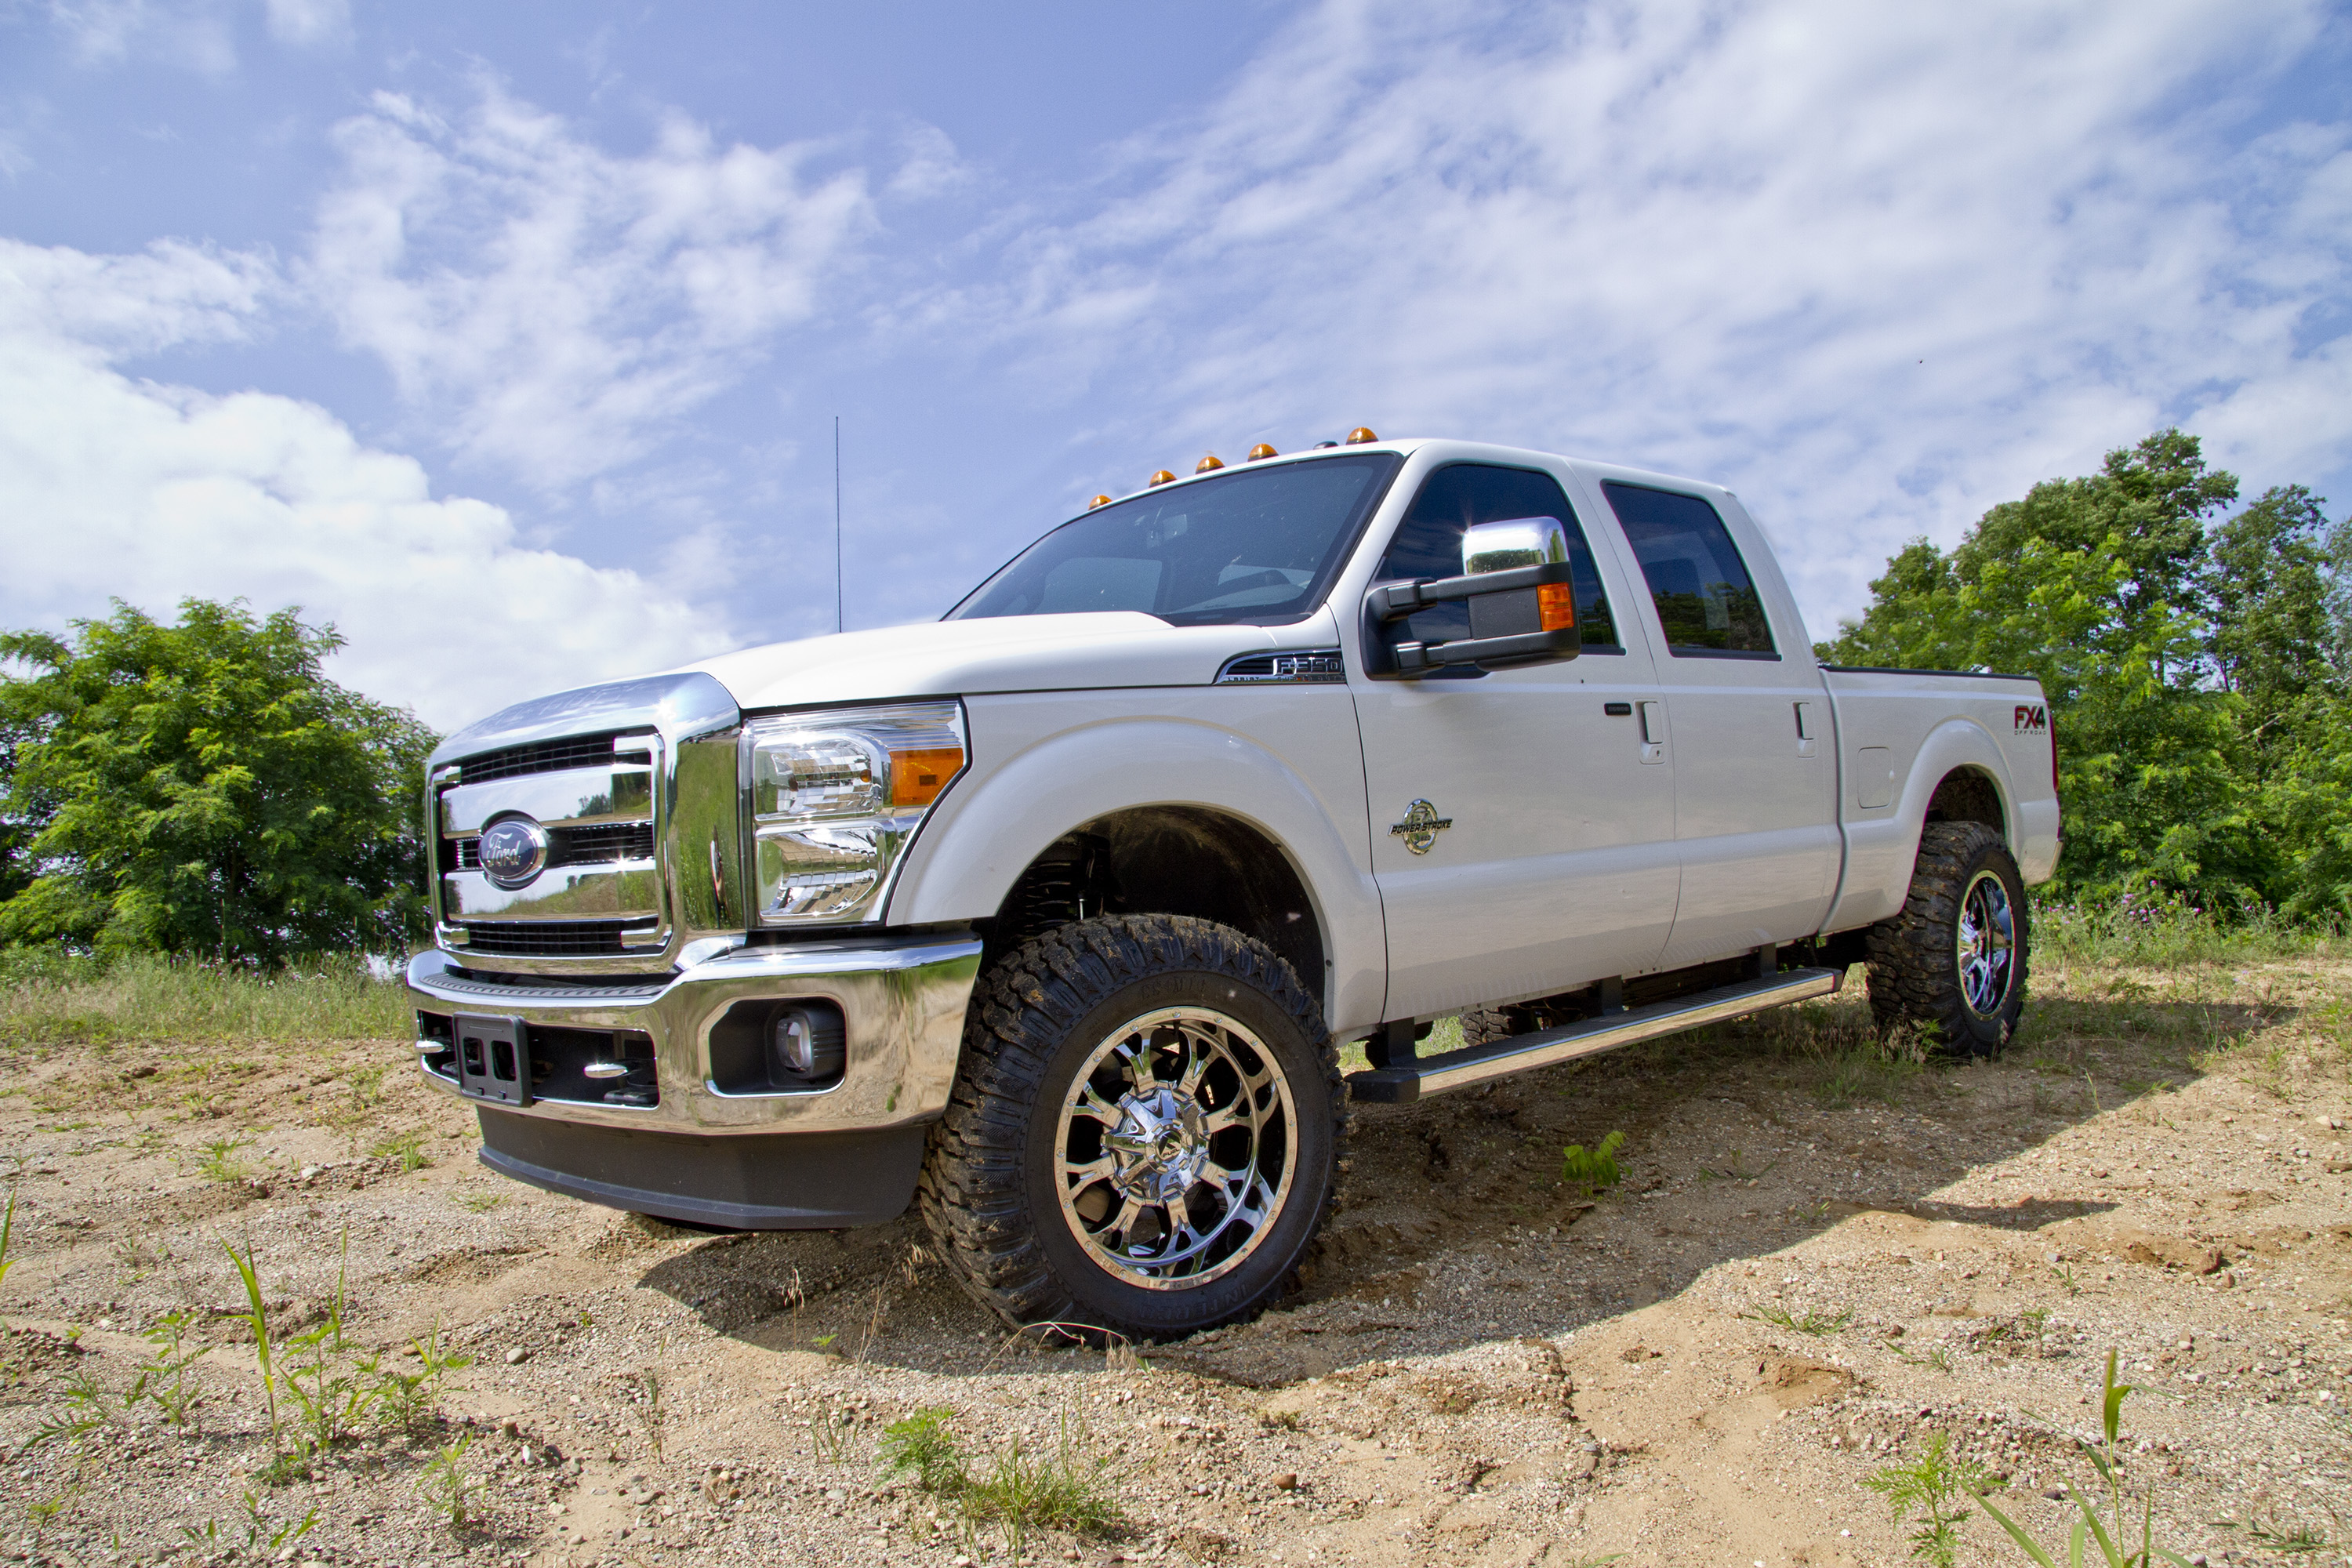 Bds Suspensionradius Arm Upgrades For F250 Trucks 2004 Ford F 250 Lifted Super Duty W 25 Ra Kit